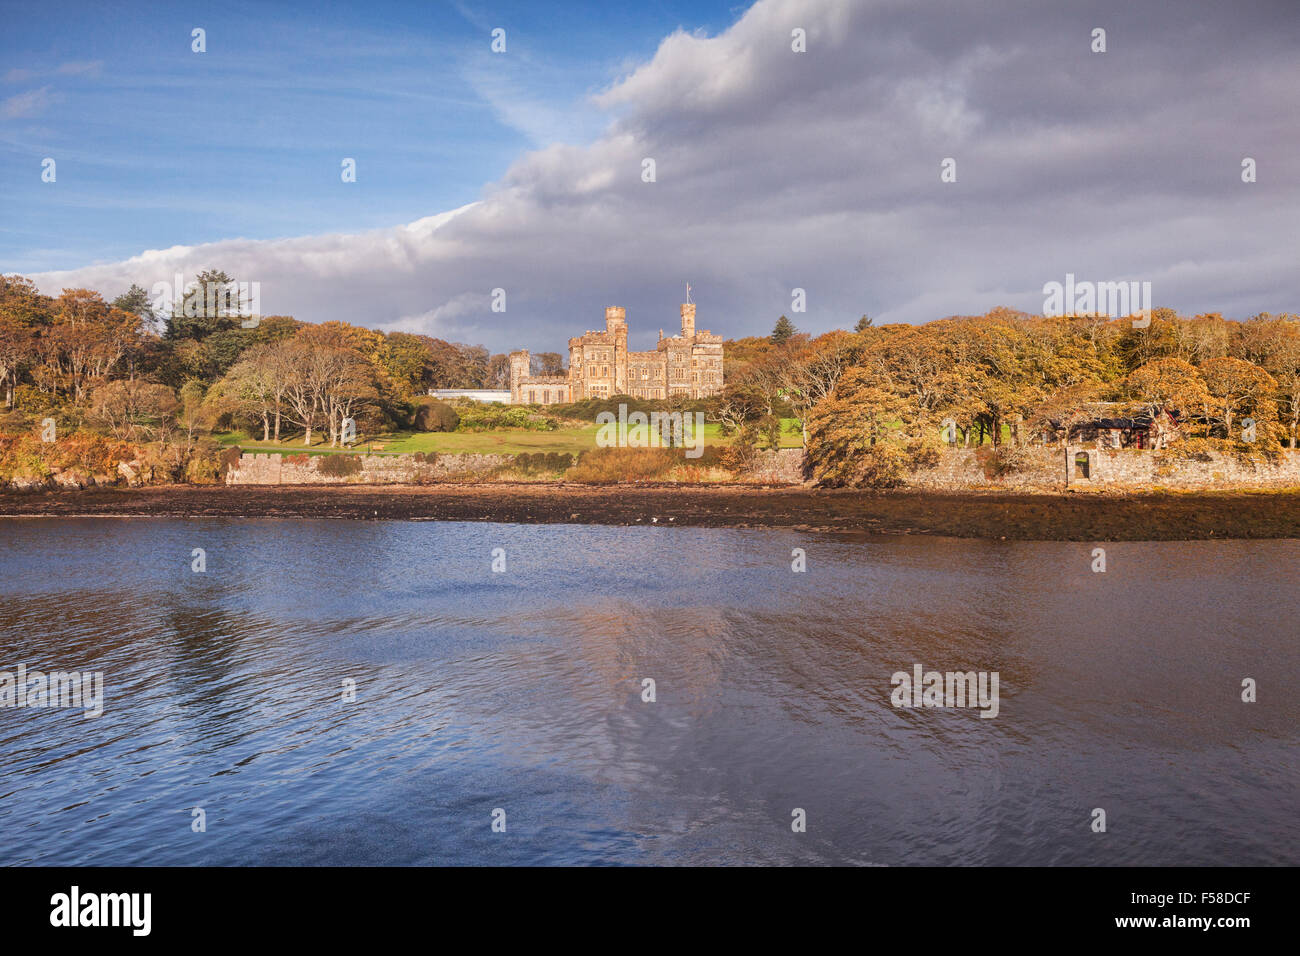 Lews Castle, Stornoway, Isle of Lewis, Outer Hebrides, Scotland, UK - Stock Image